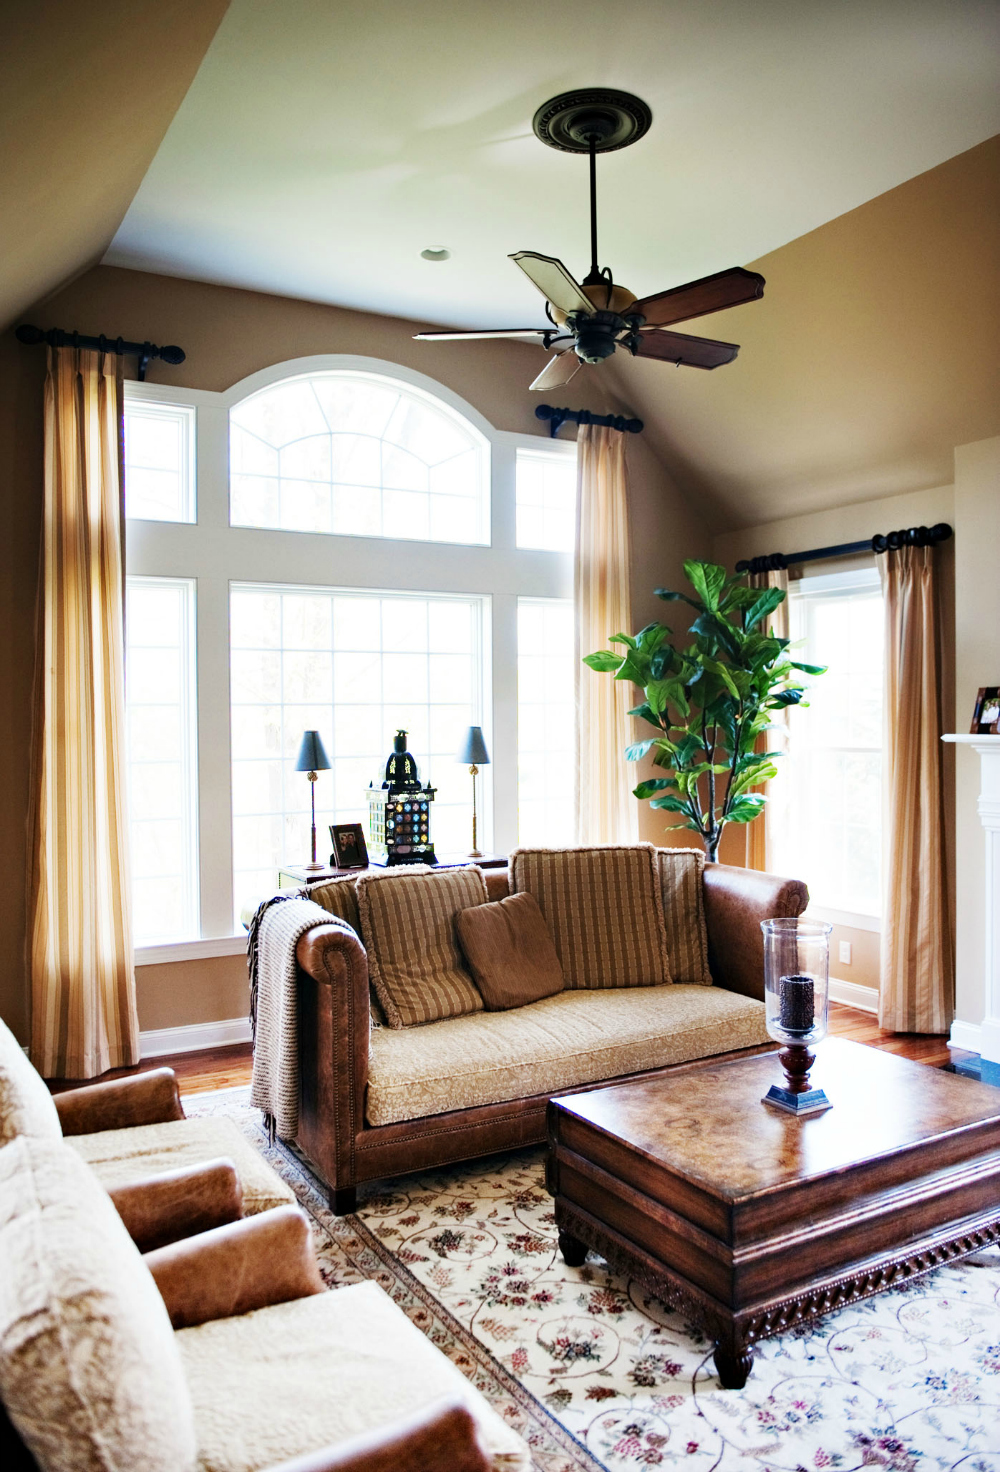 sarah hermans interior design family room.jpg